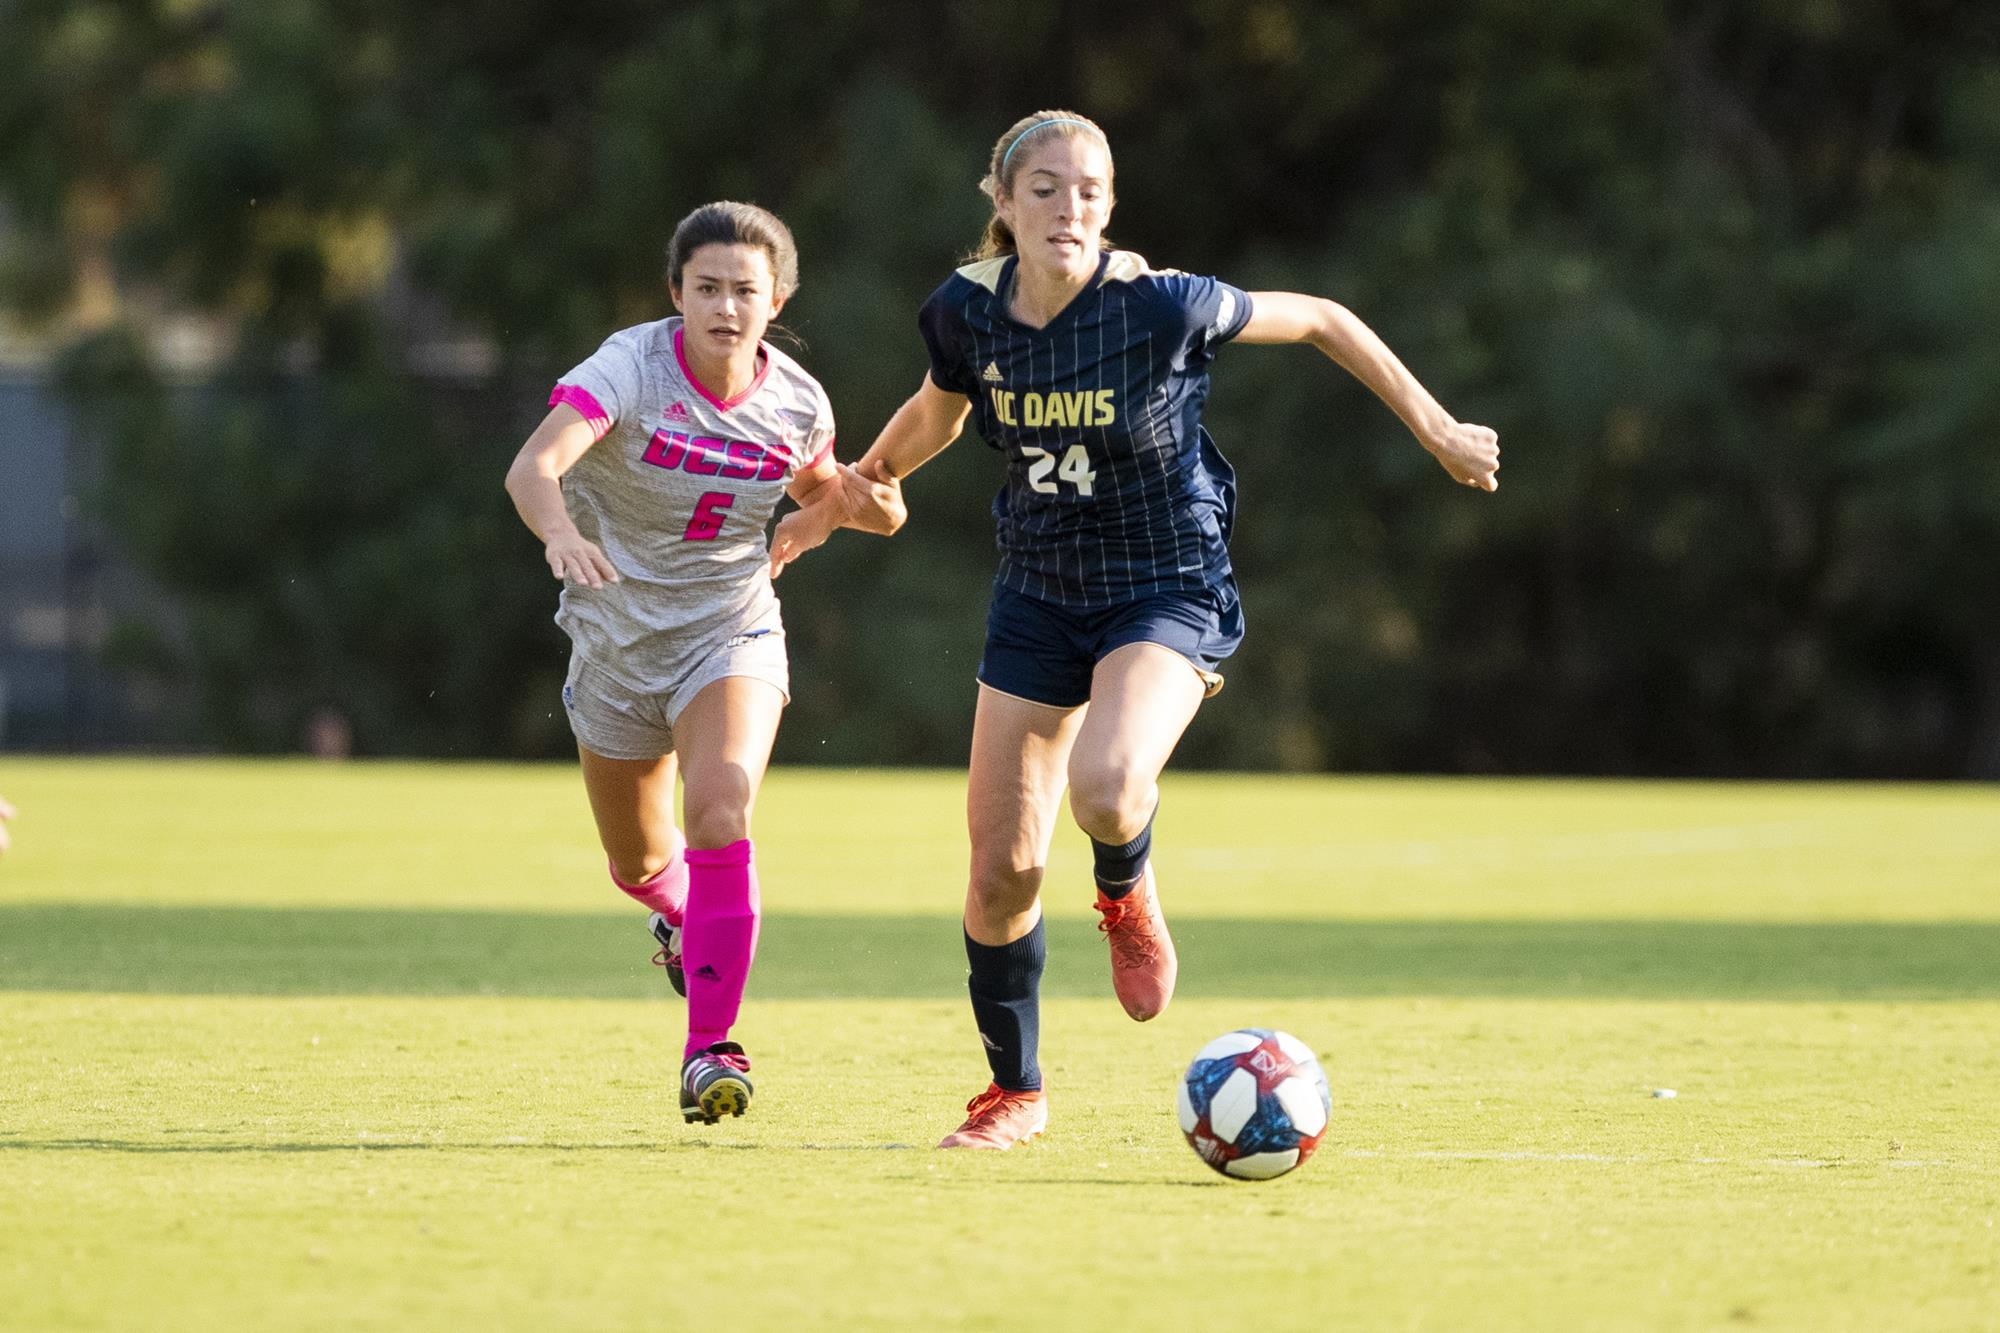 UC Davis heads to Long Beach State for Friday's ESPN3 matchup, ends weekend at UC Riverside